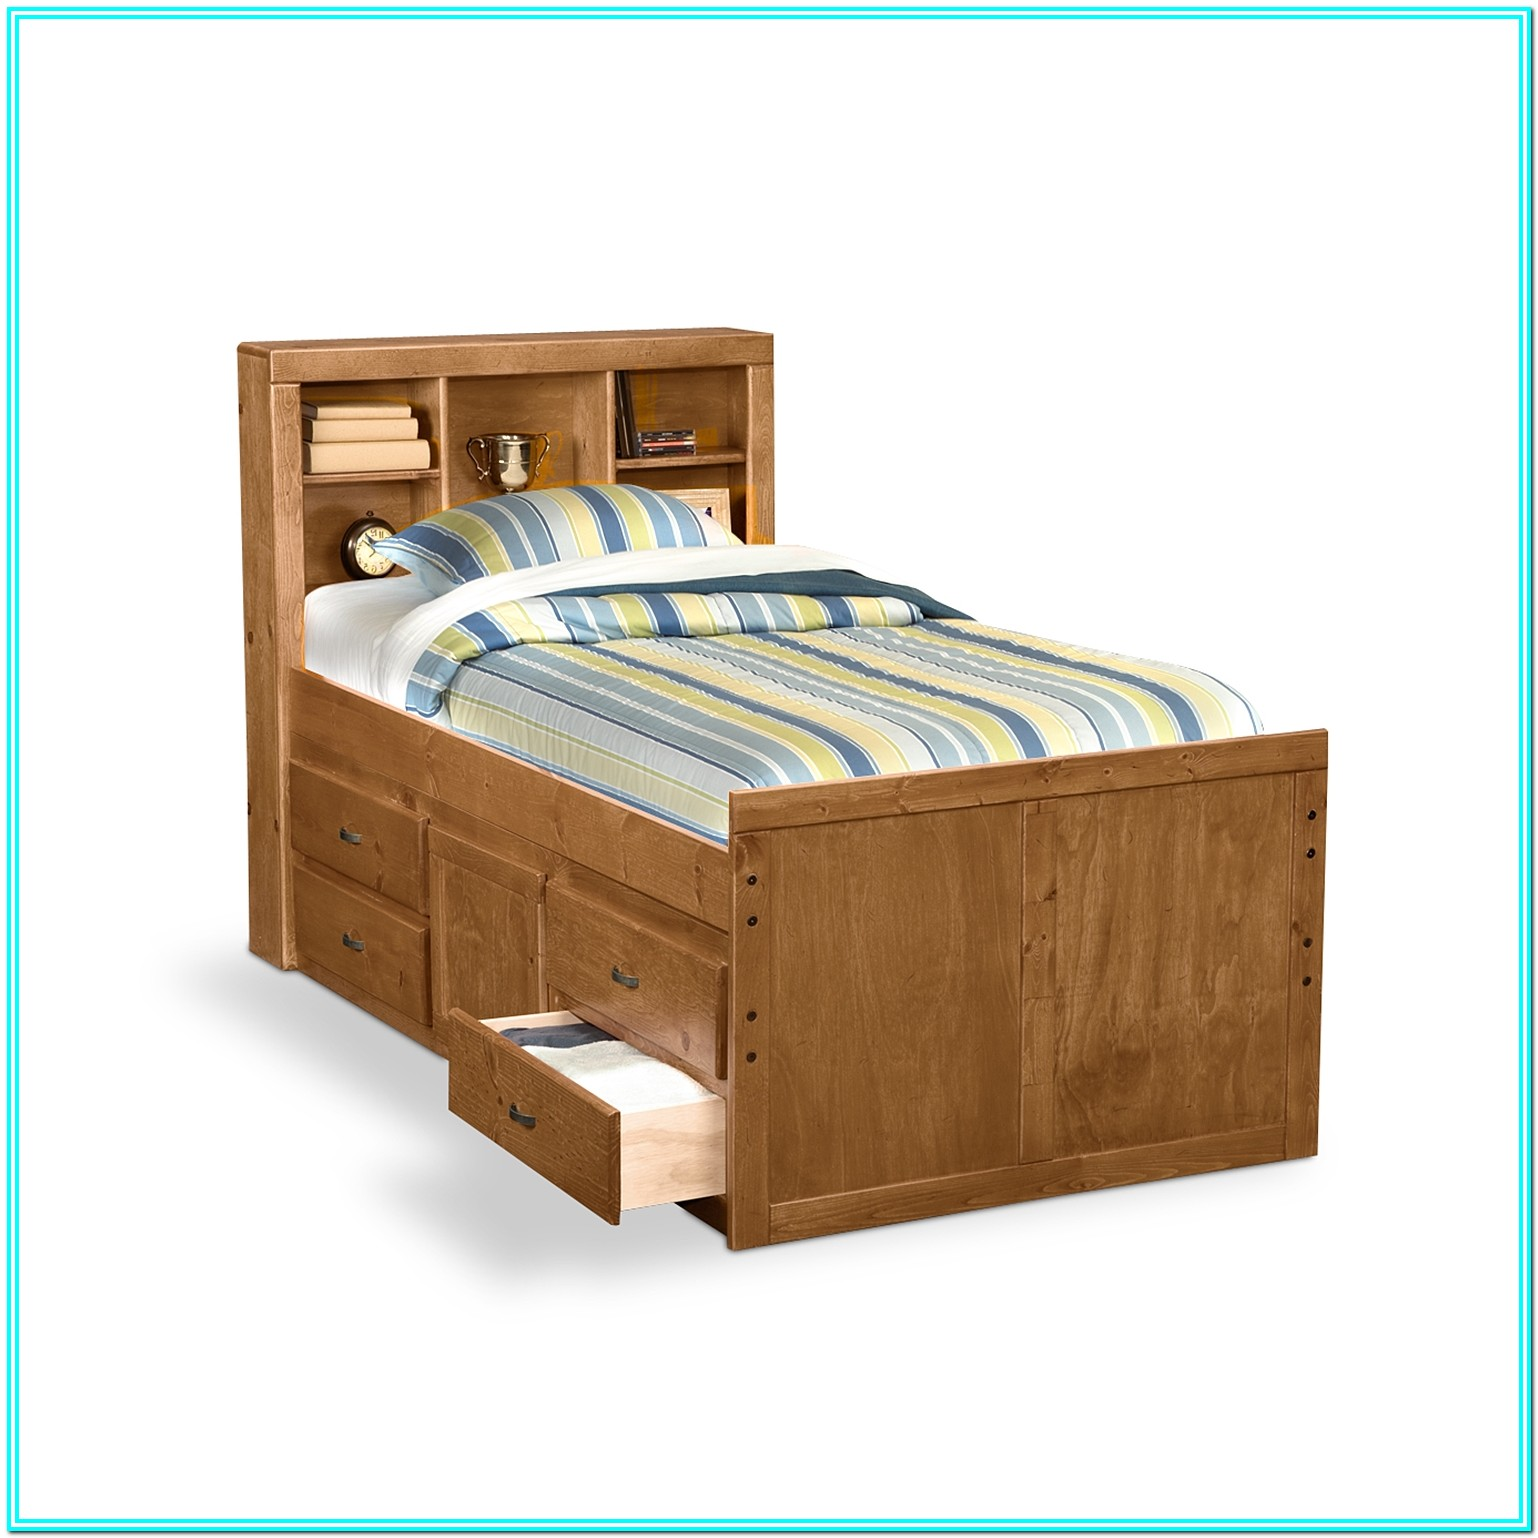 Queen Platform Bed With Storage Drawers Plans